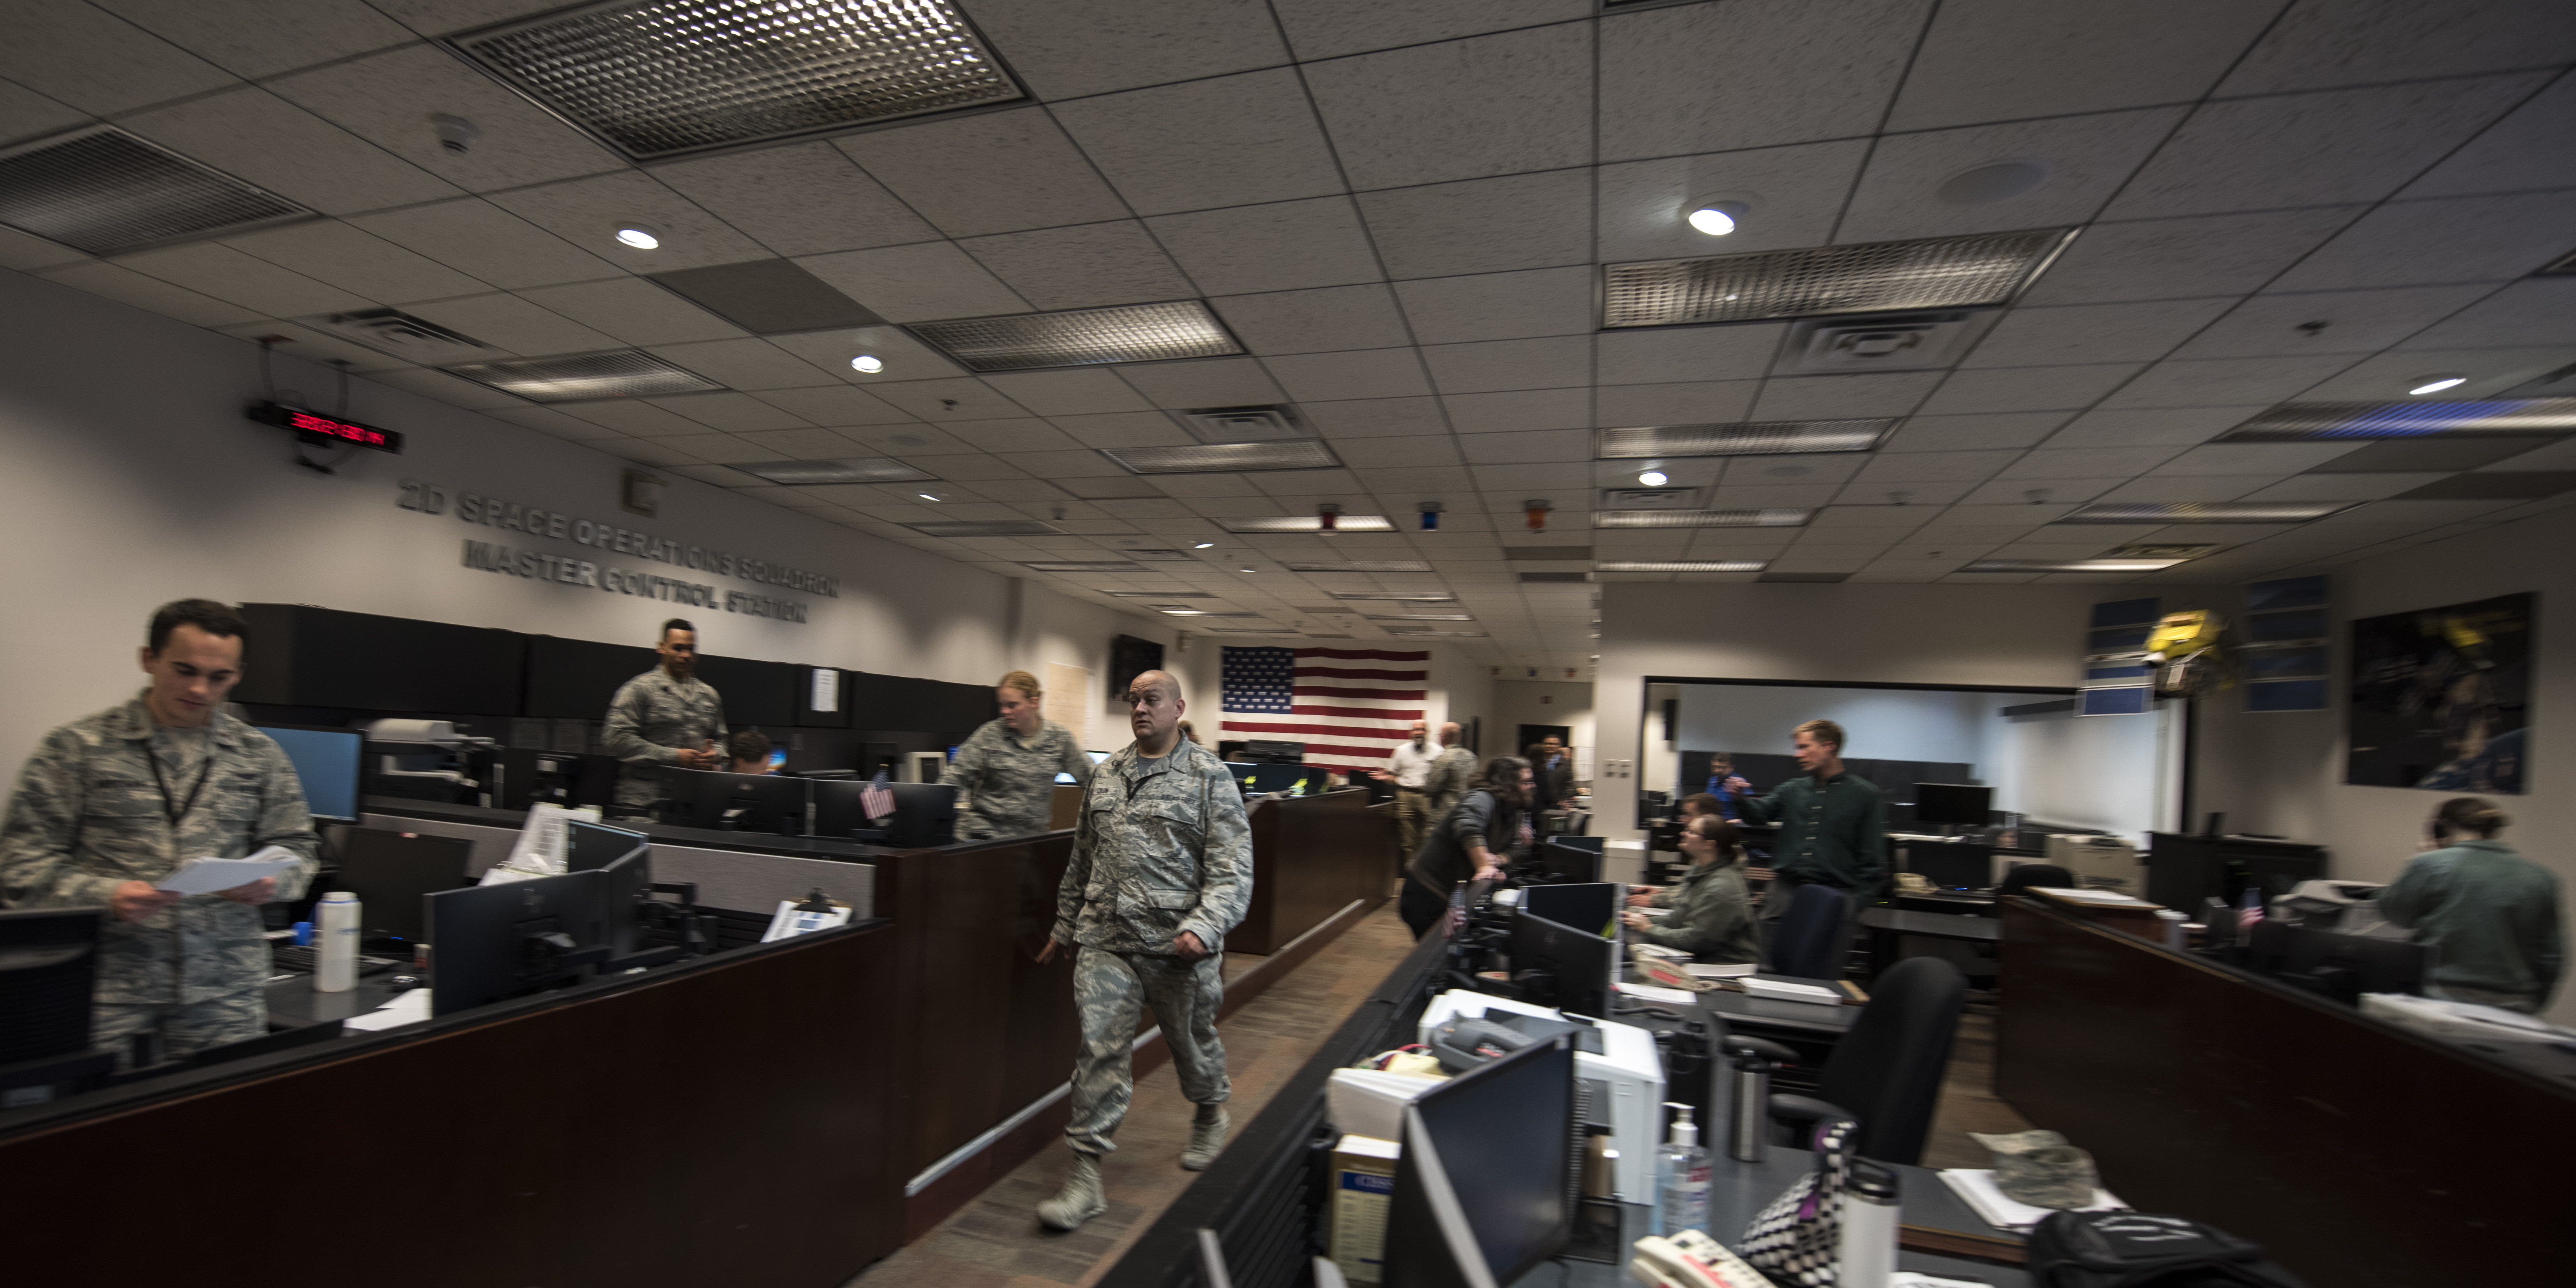 Air Force Announces GPS Milestone as 2nd SOPS Takes Command of AEP 7.5